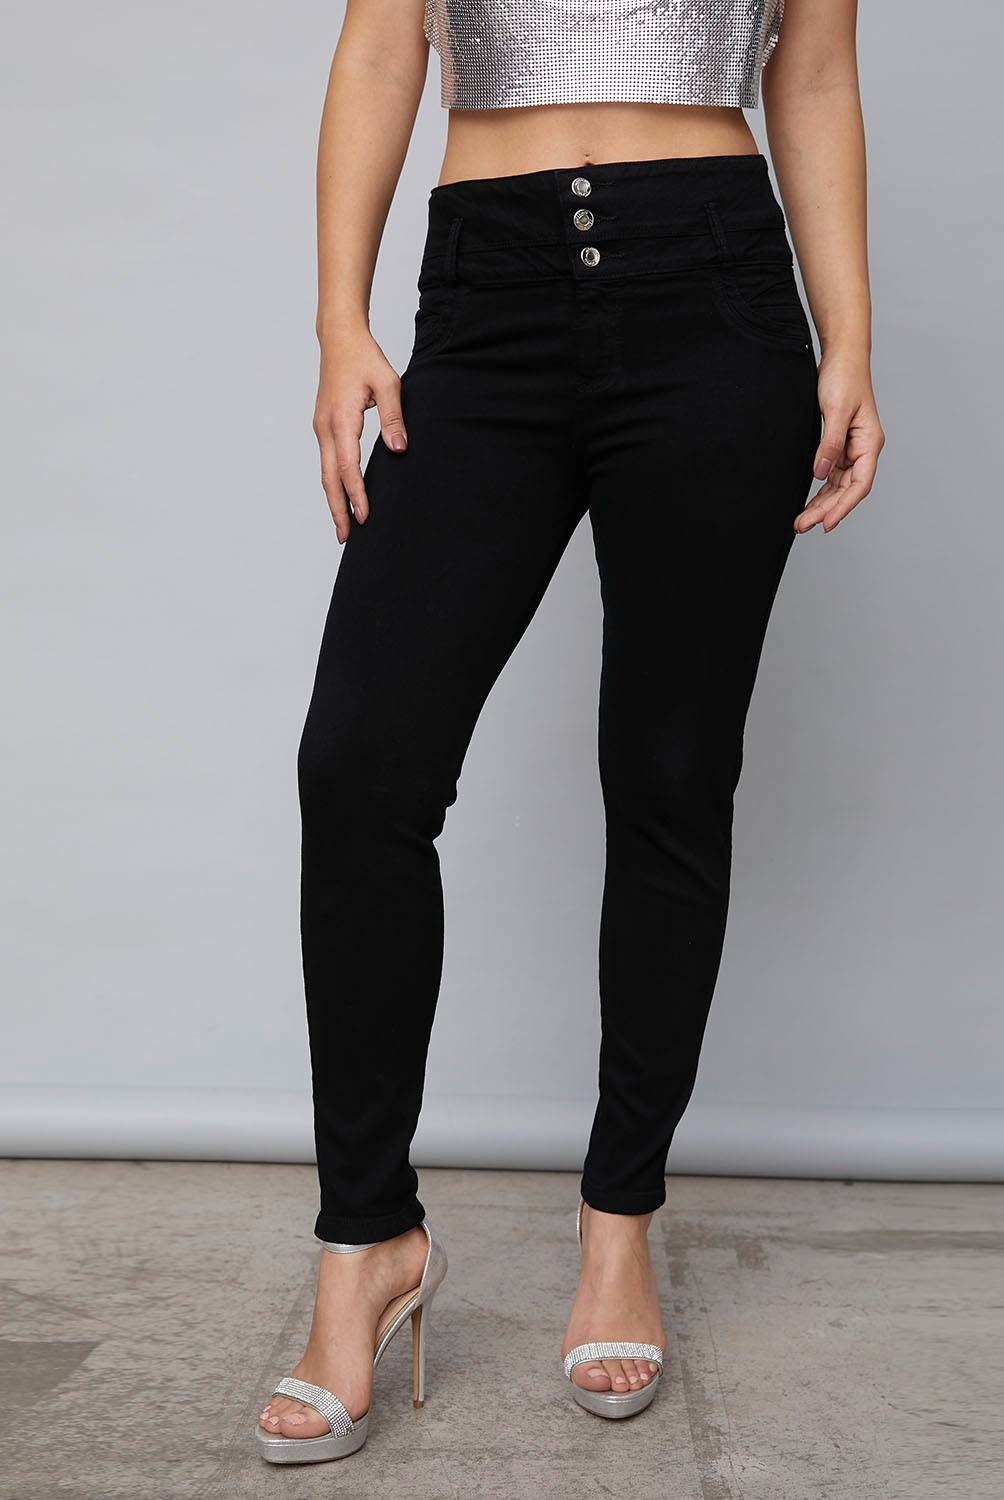 MOSSIMO - Jeans Skinny Mujer